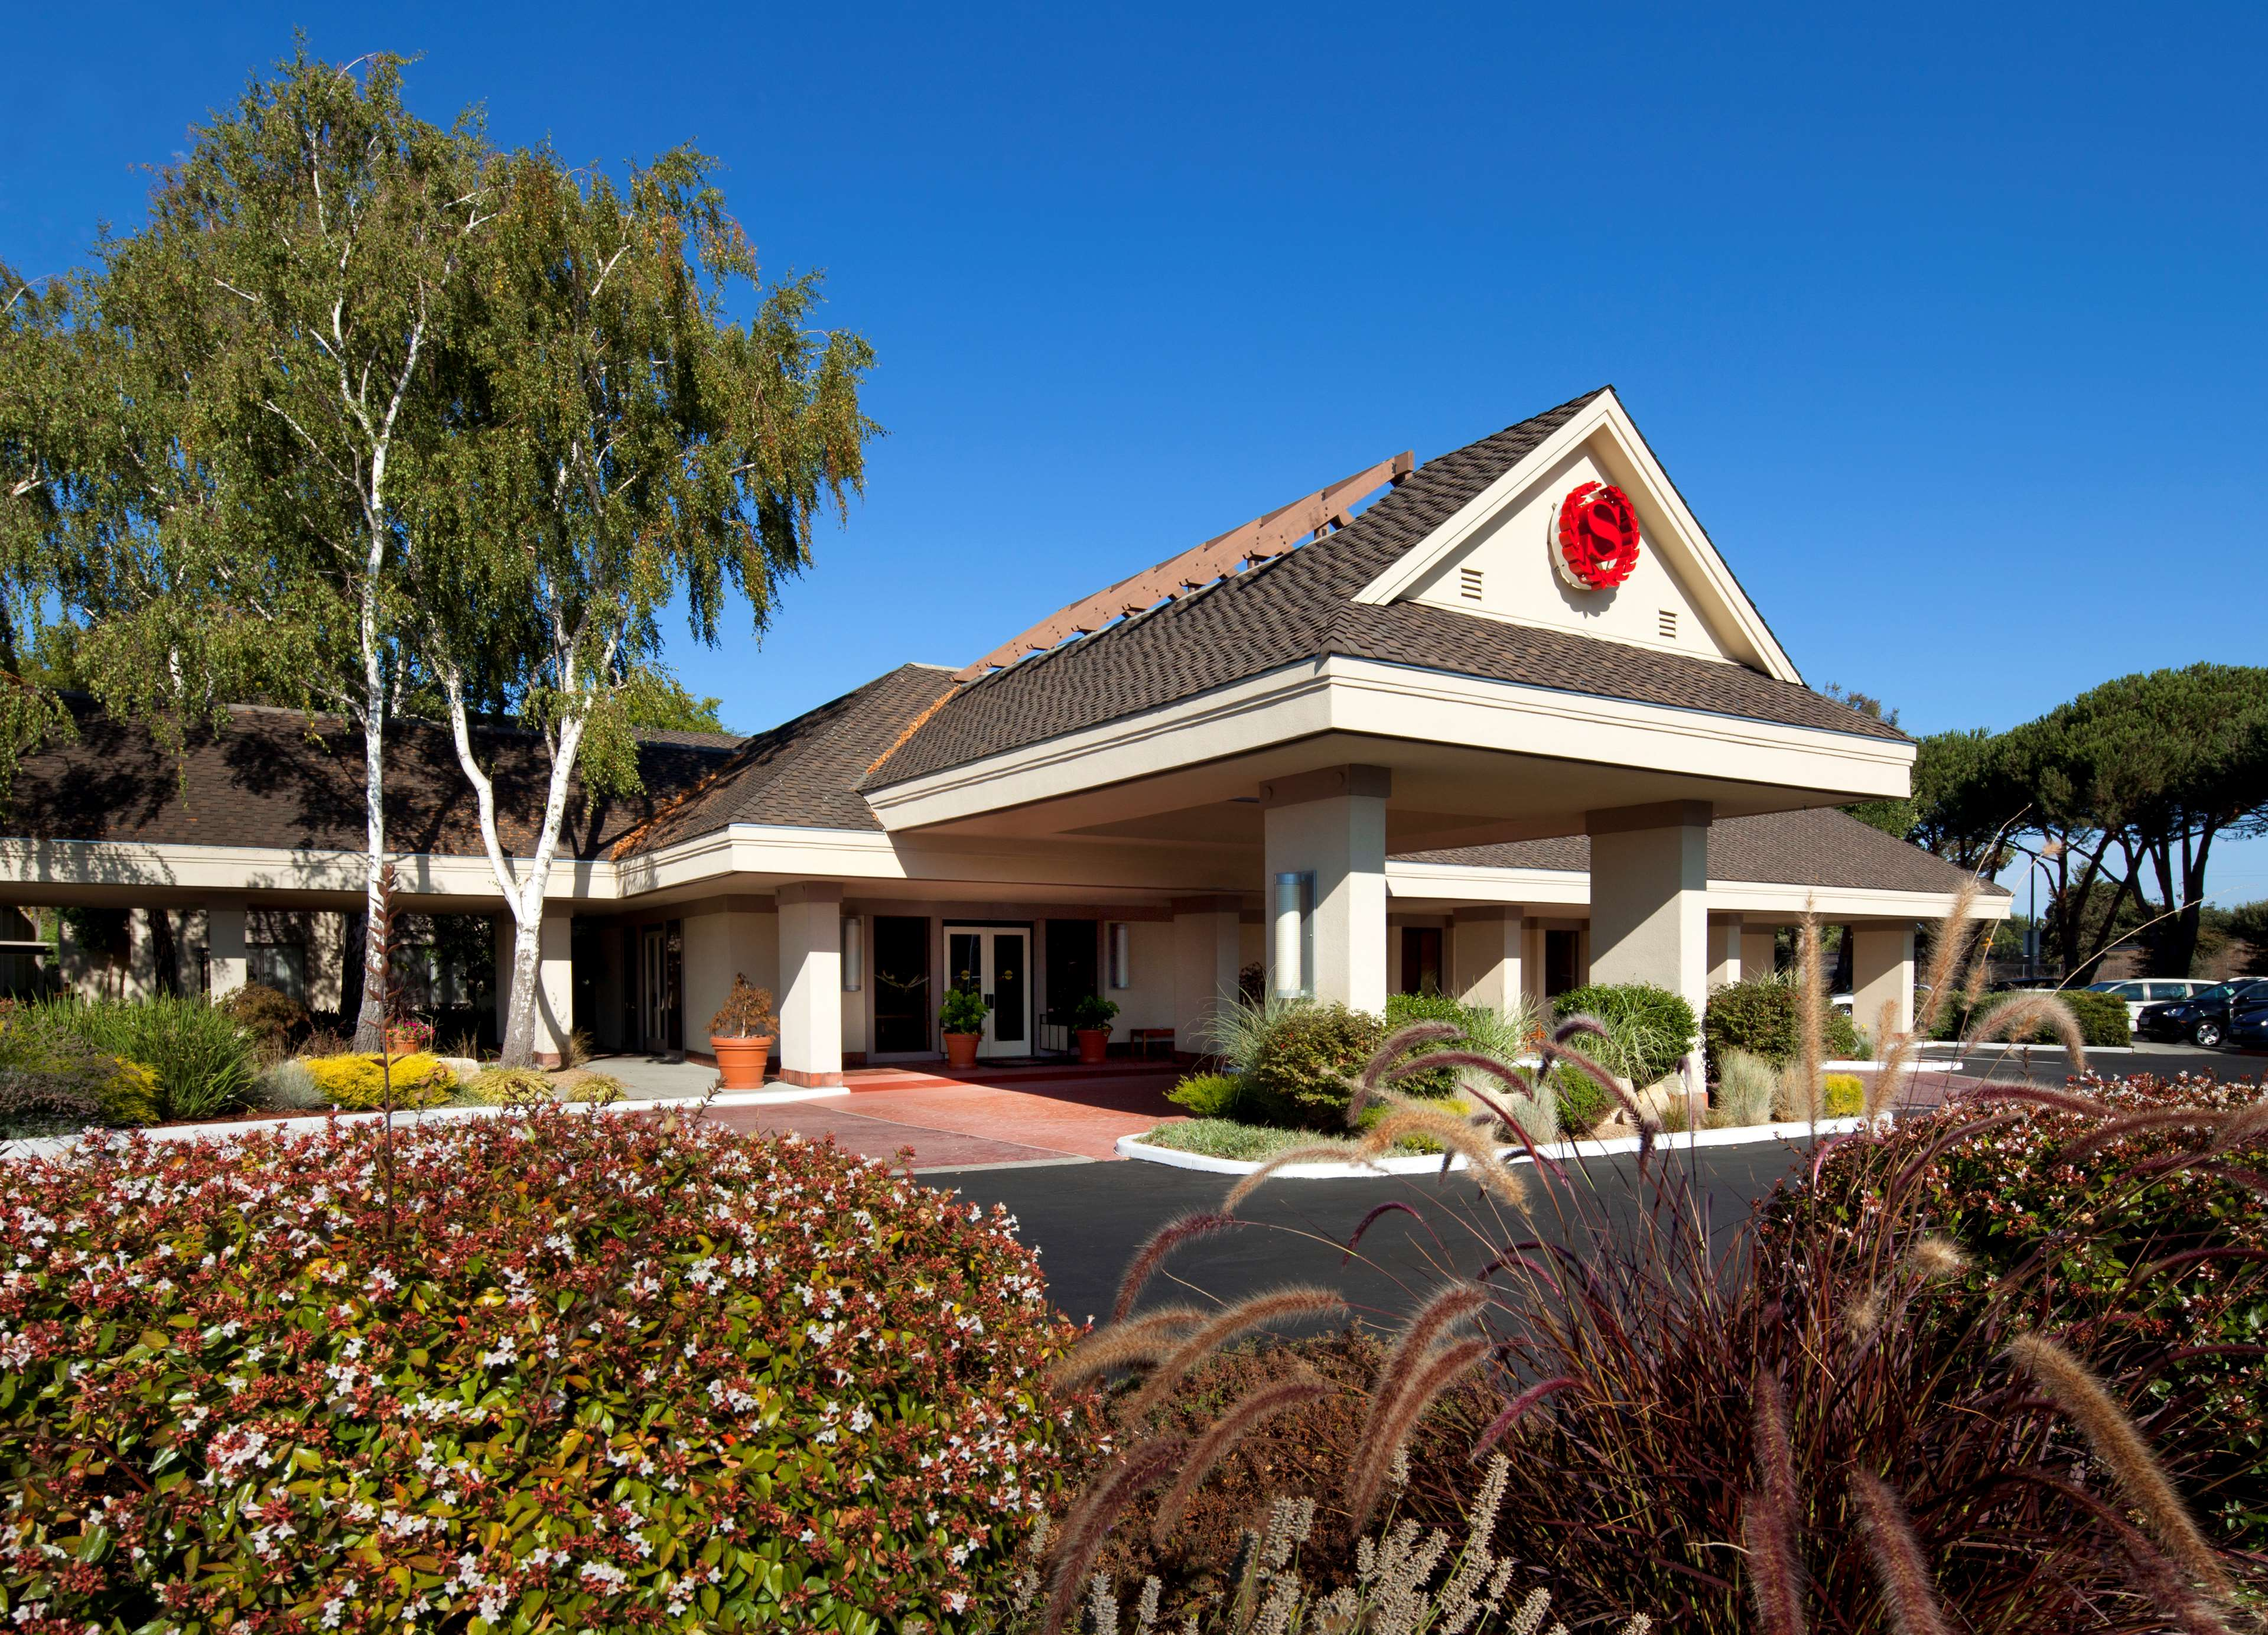 Best Hotels In Sunnyvale Ca